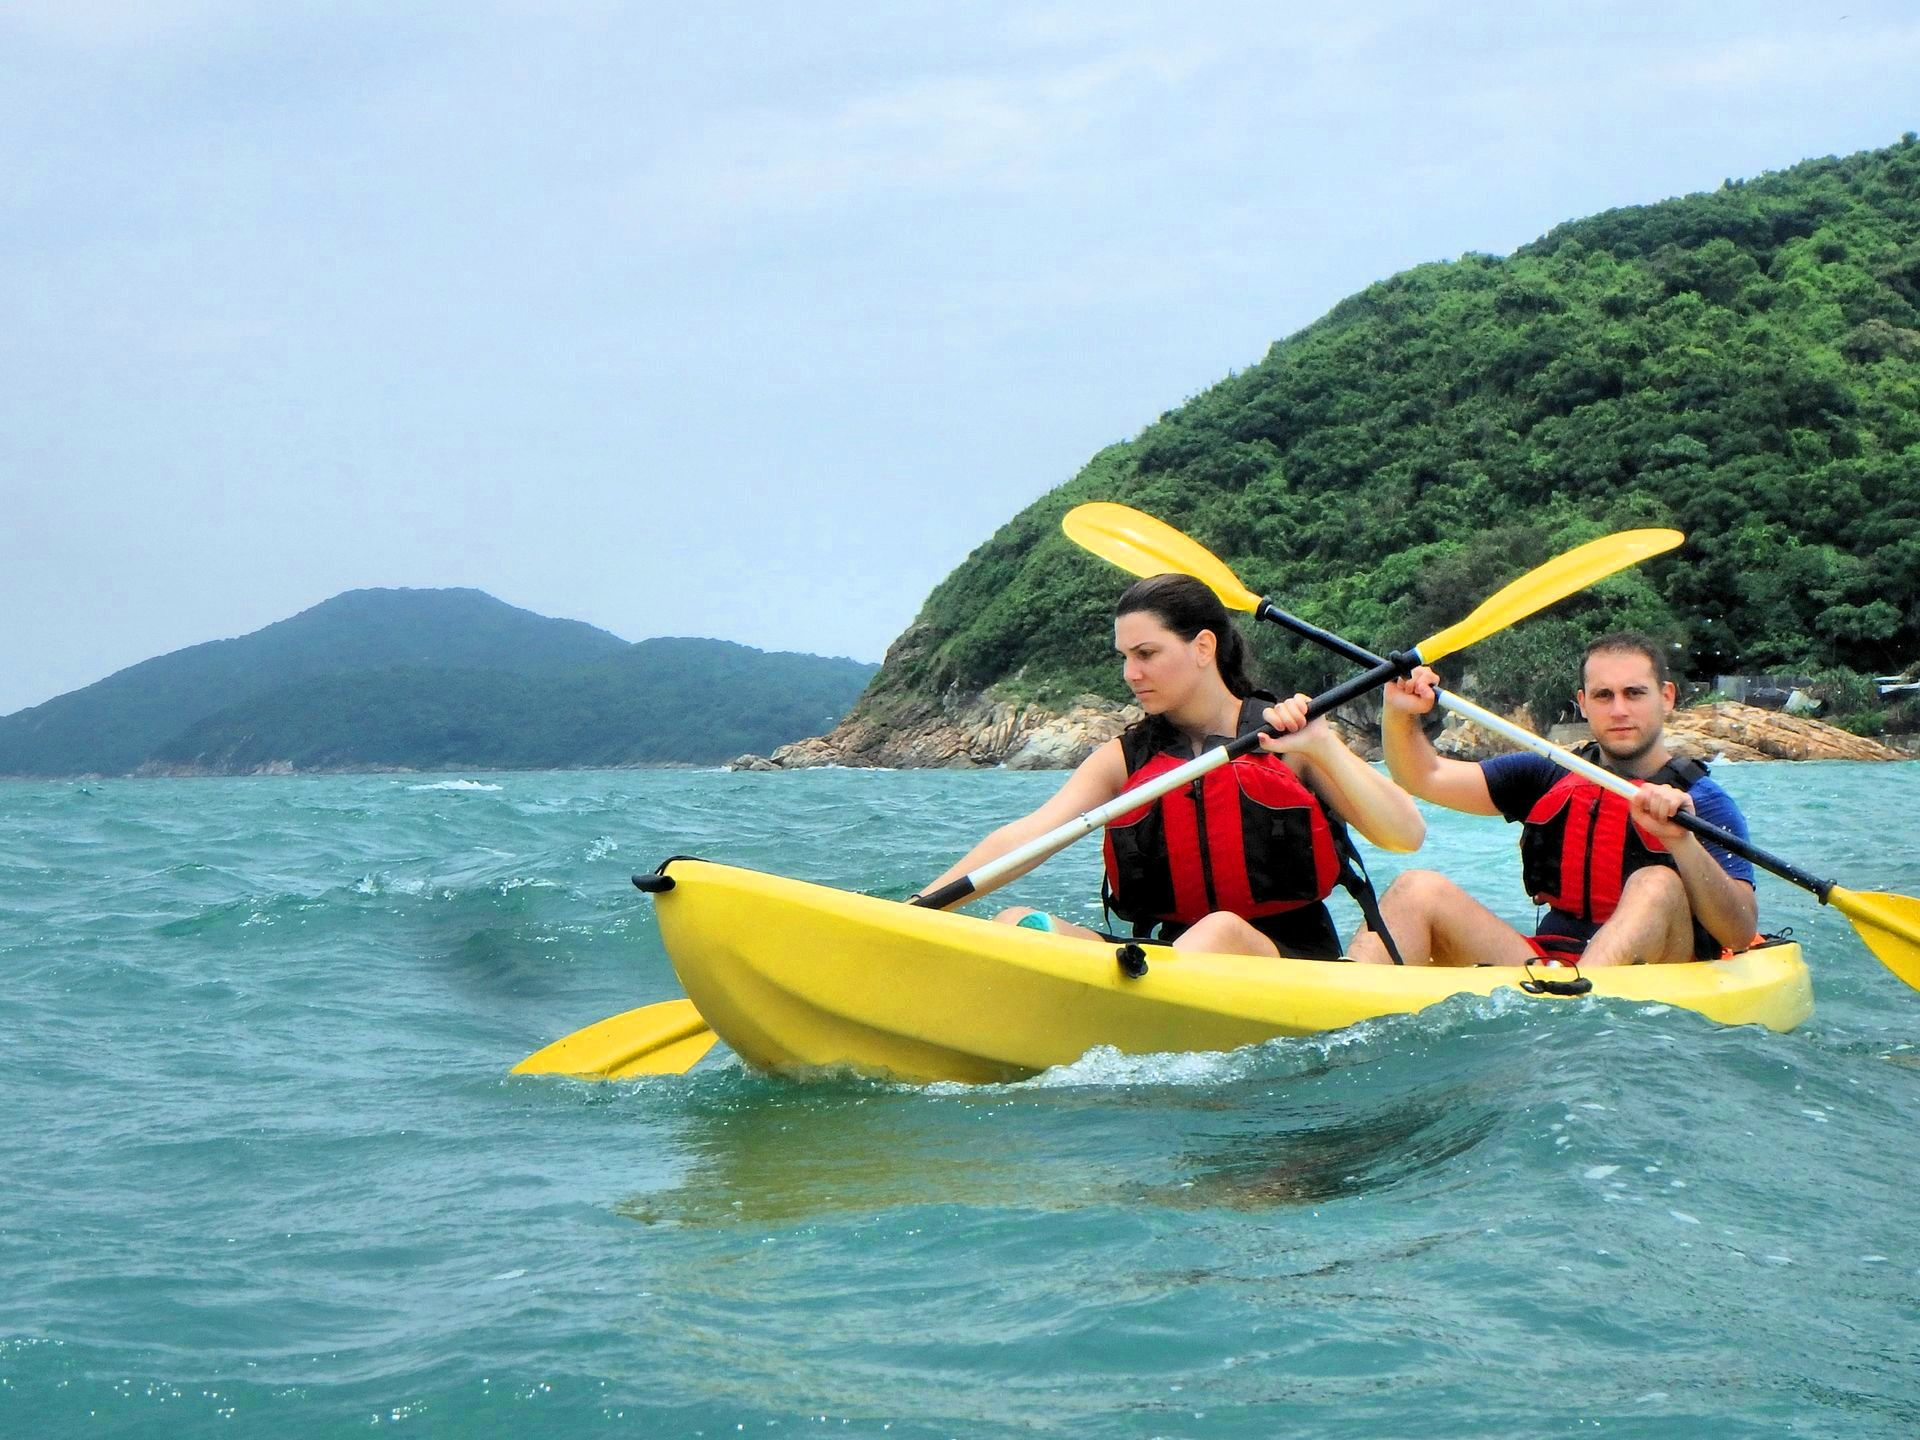 kayaking in Hong Kong